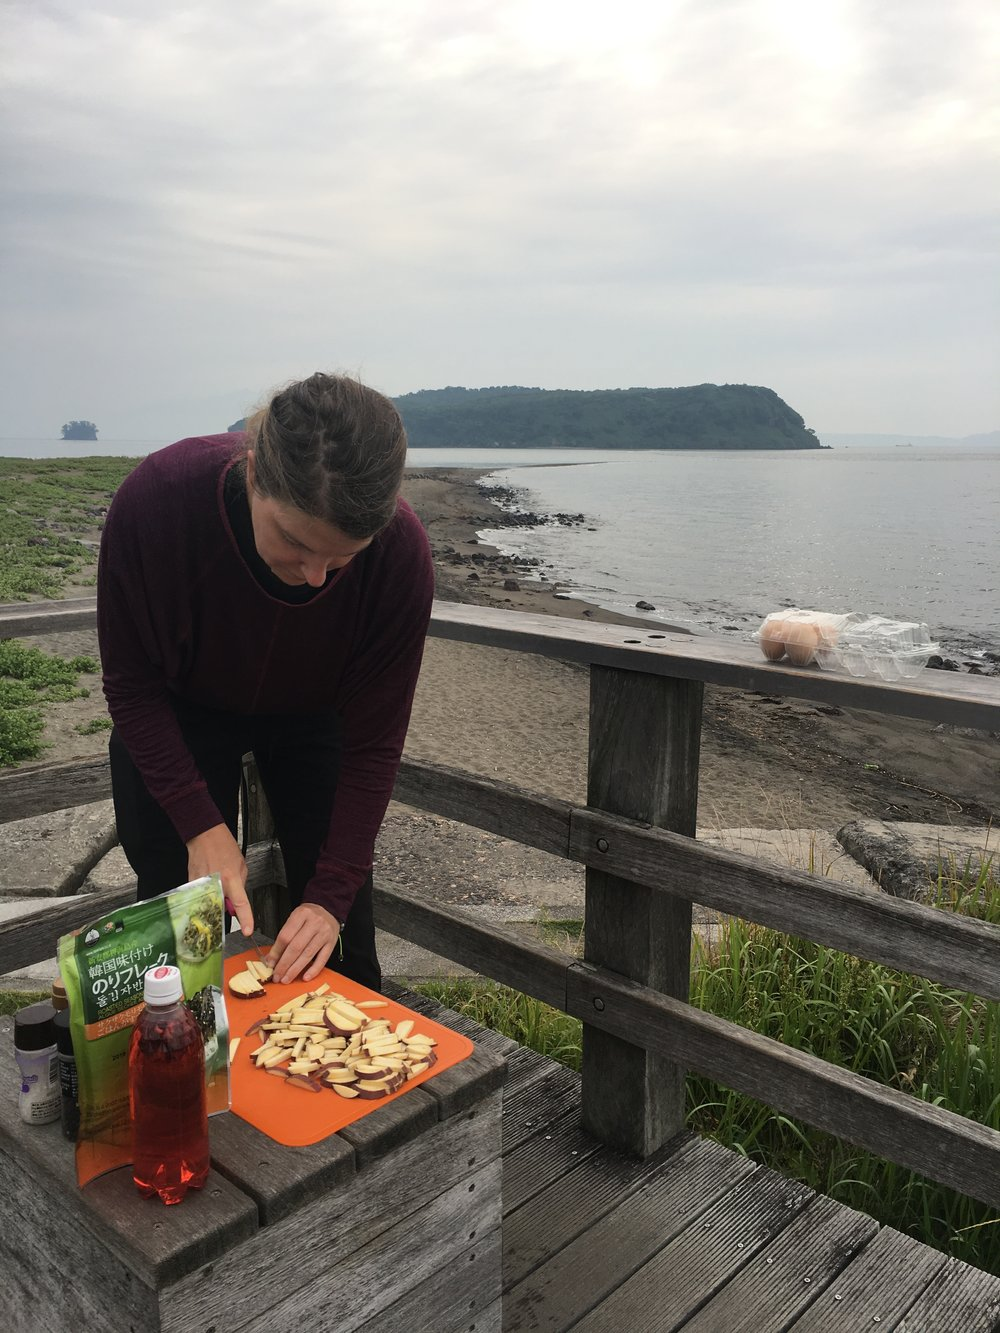 Cooking outside on the beach